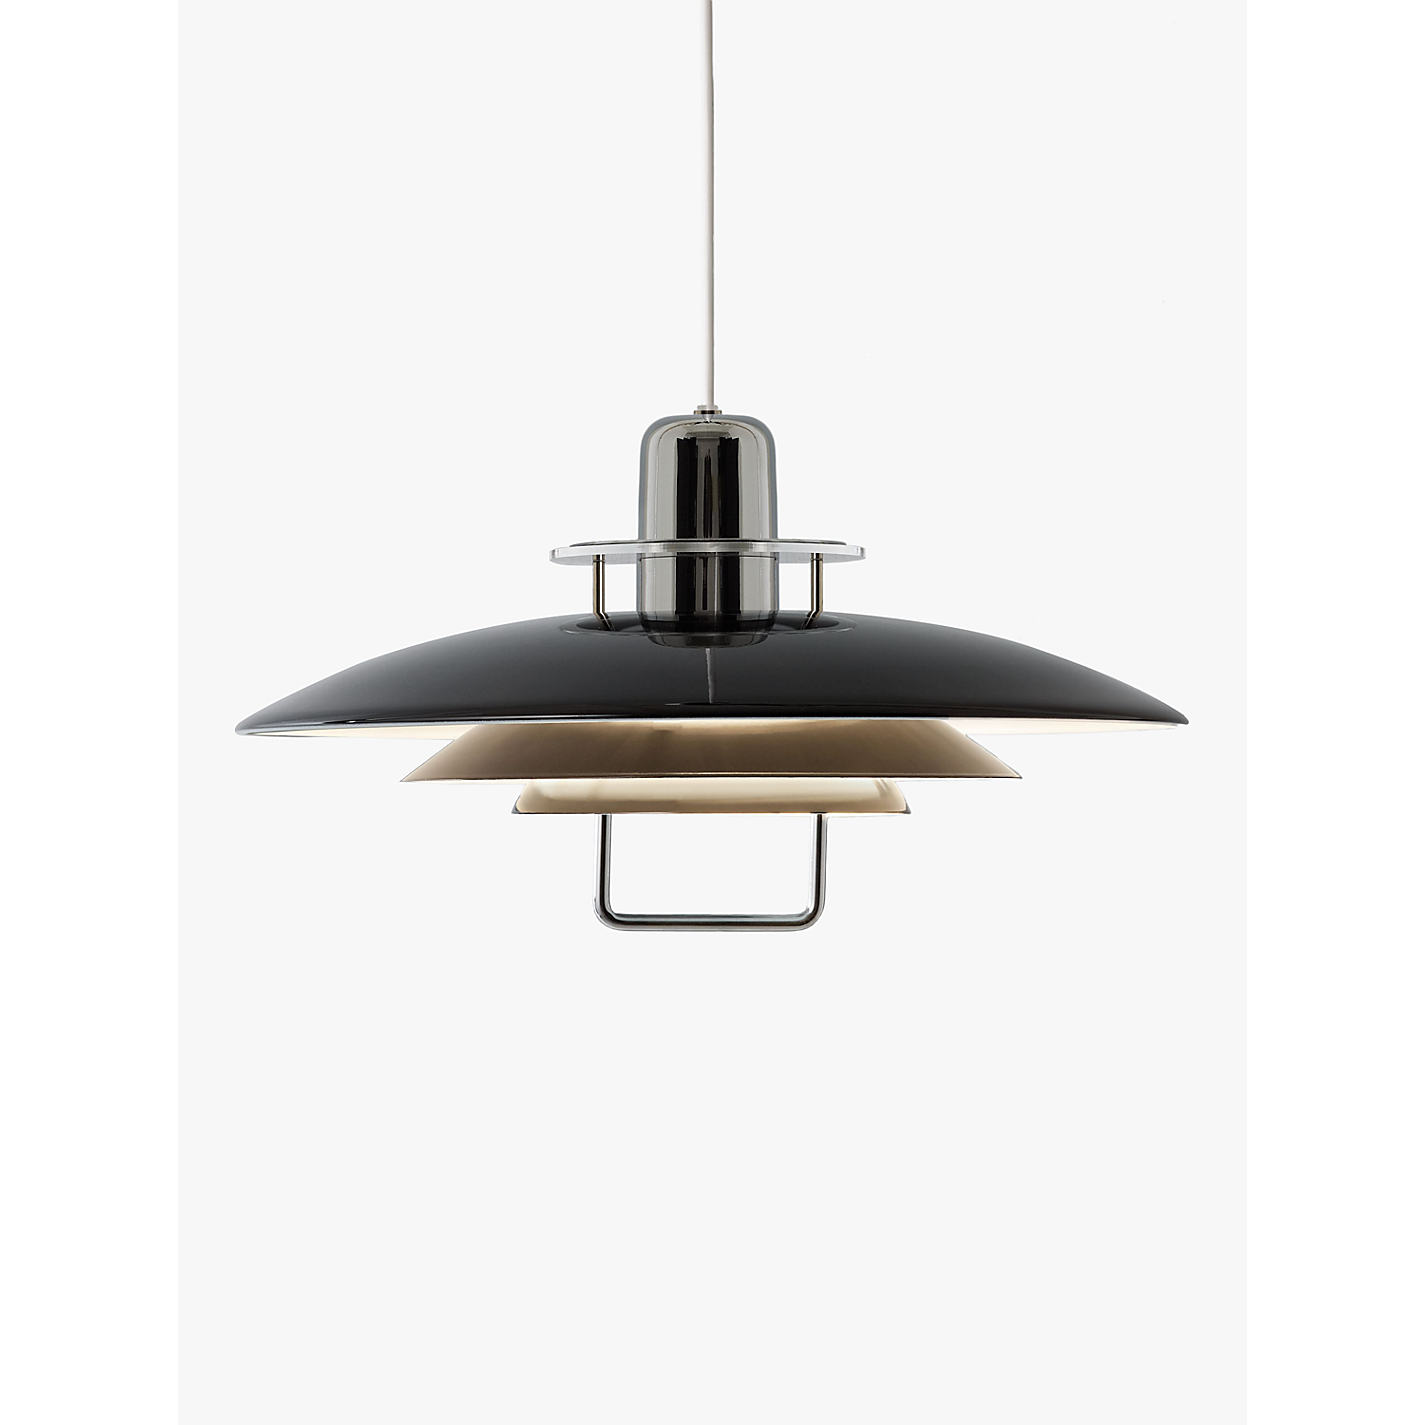 Rise and fall pendant light fittings -  Buy Belid Felix Rise And Fall Ceiling Light Online At Johnlewis Com